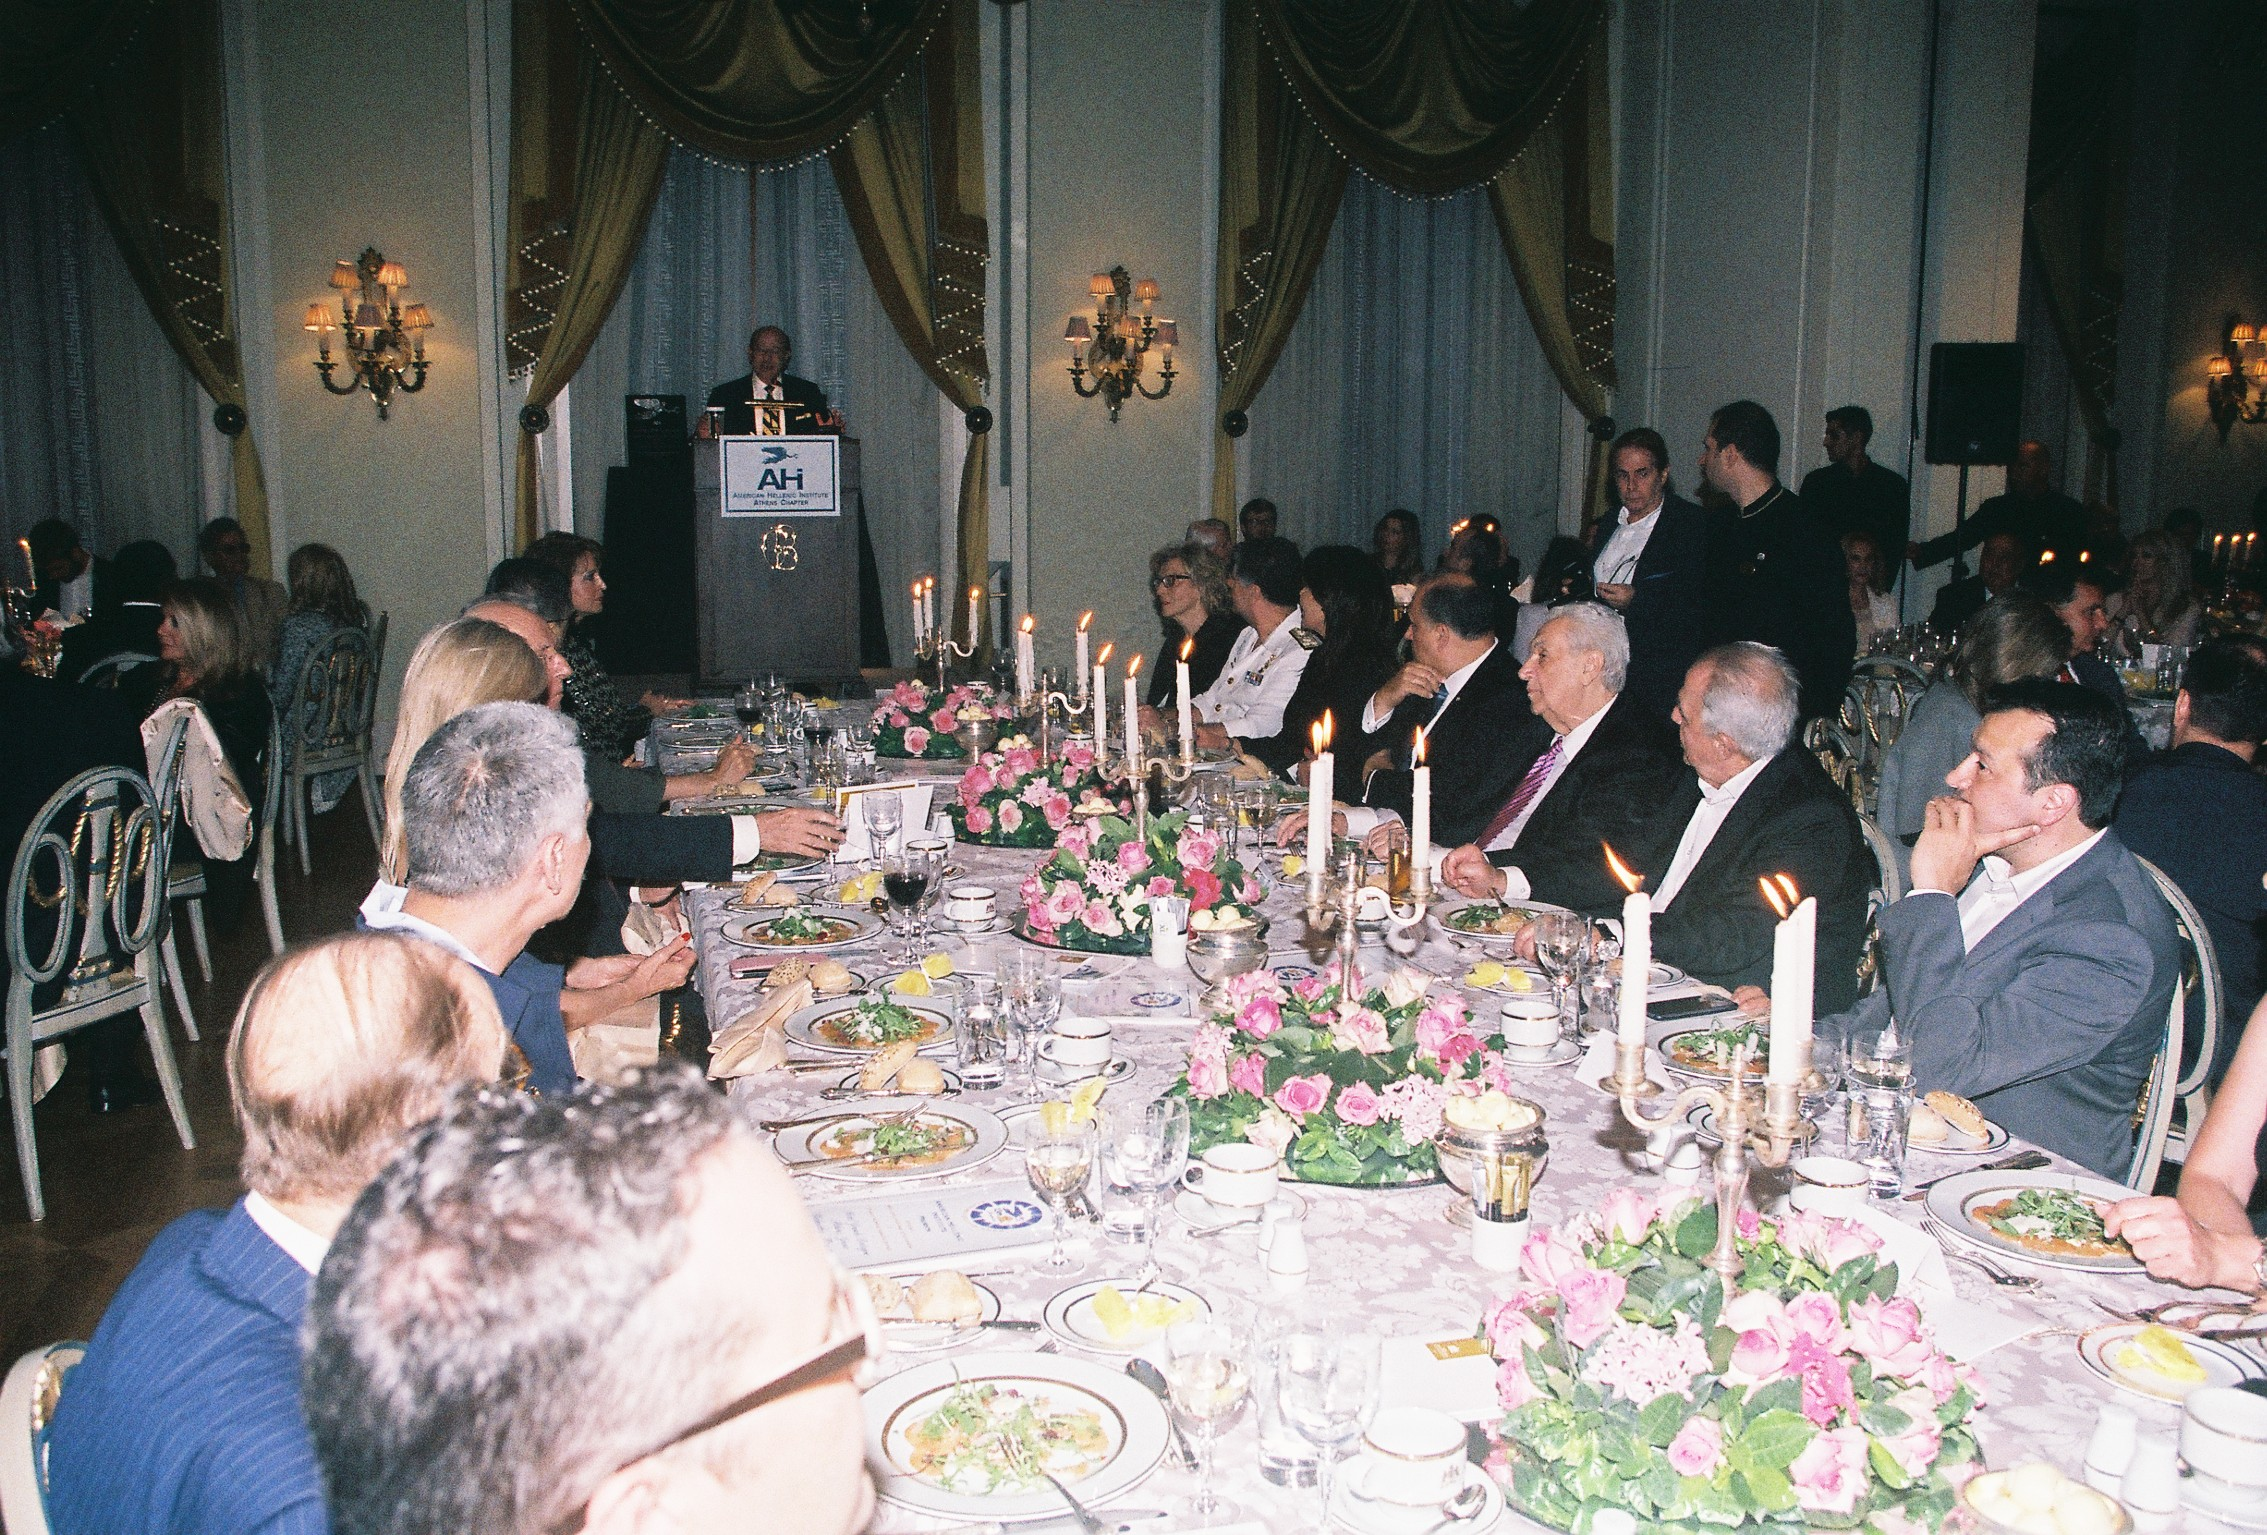 Constantine Galanis gretting the guests at the 13th Annual Awards Dinner in Athens